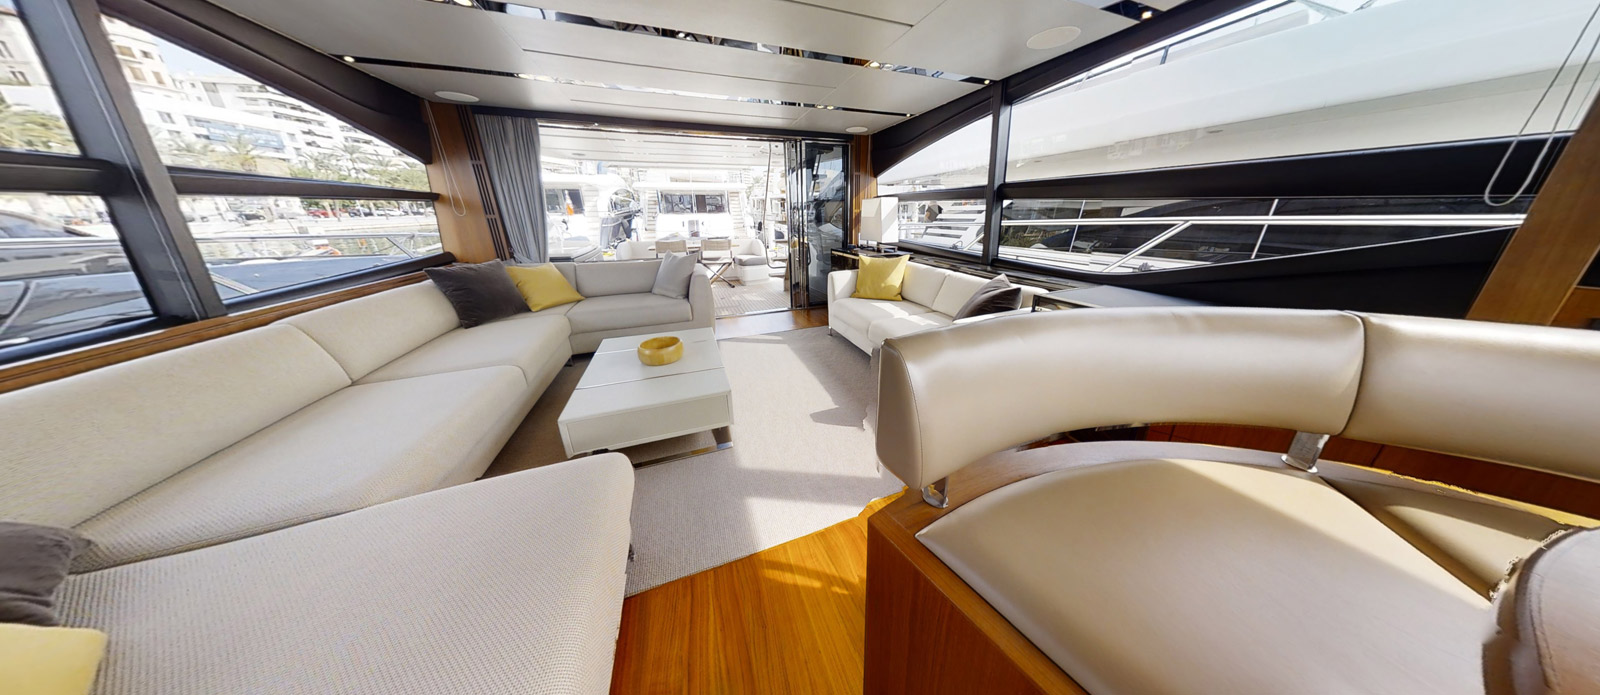 Princess-S72-Gee-n-Tee-Saloon-Looking-Aft